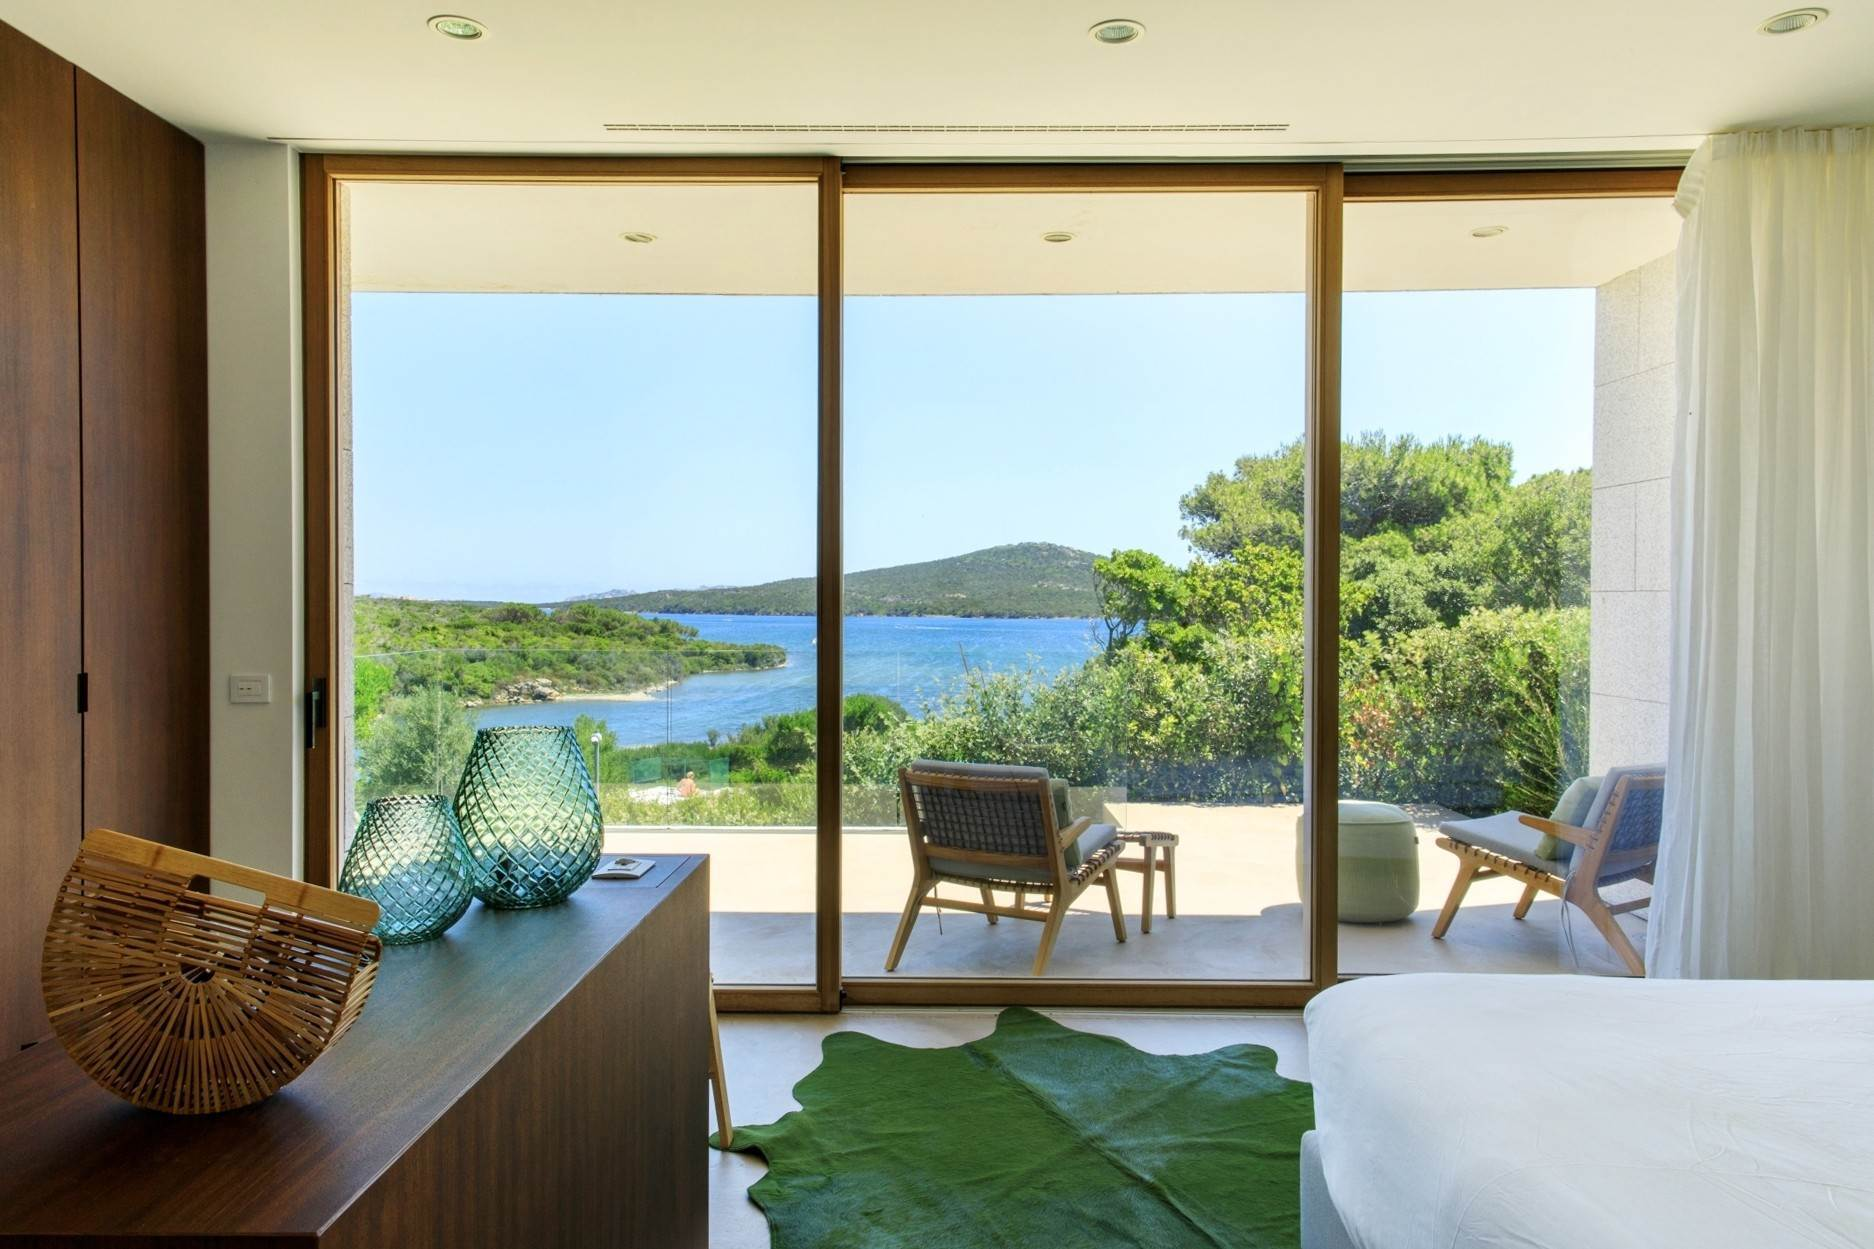 16. Villa/Townhouse for Sale at Waterfront Villa La Coluccia Costa Smeralda, Olbia Tempio,07020 Italy